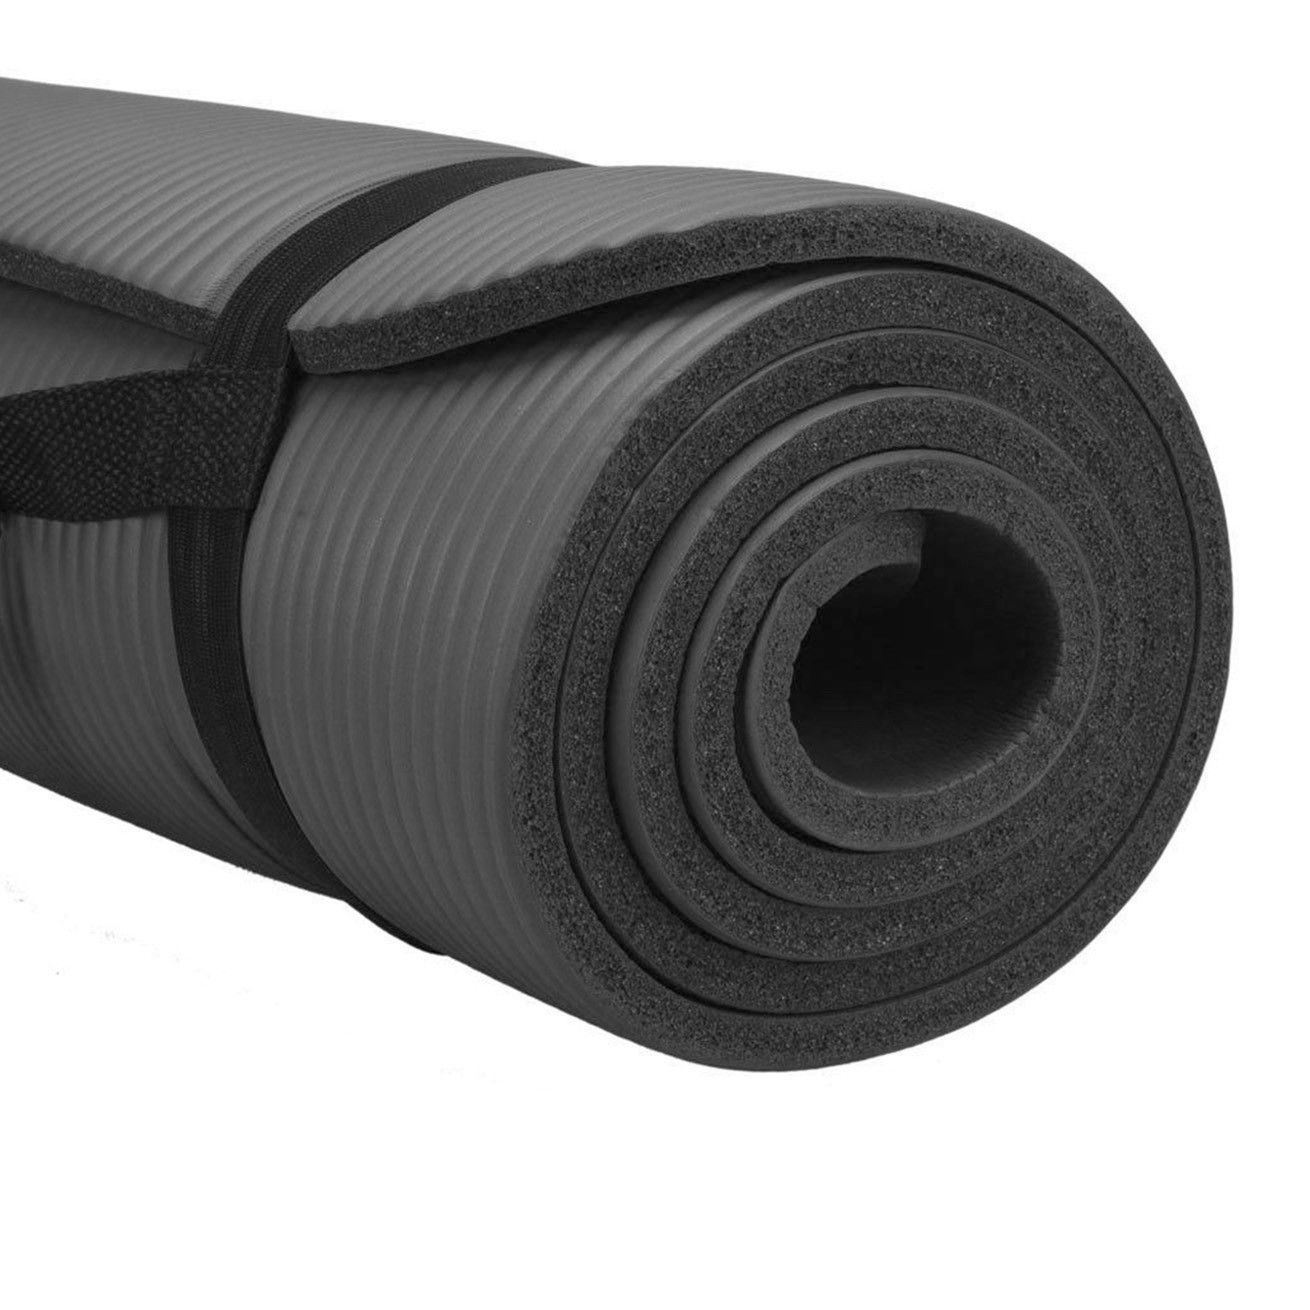 Pure Fitness Deluxe 12mm Exercise Mat (Charcoal)